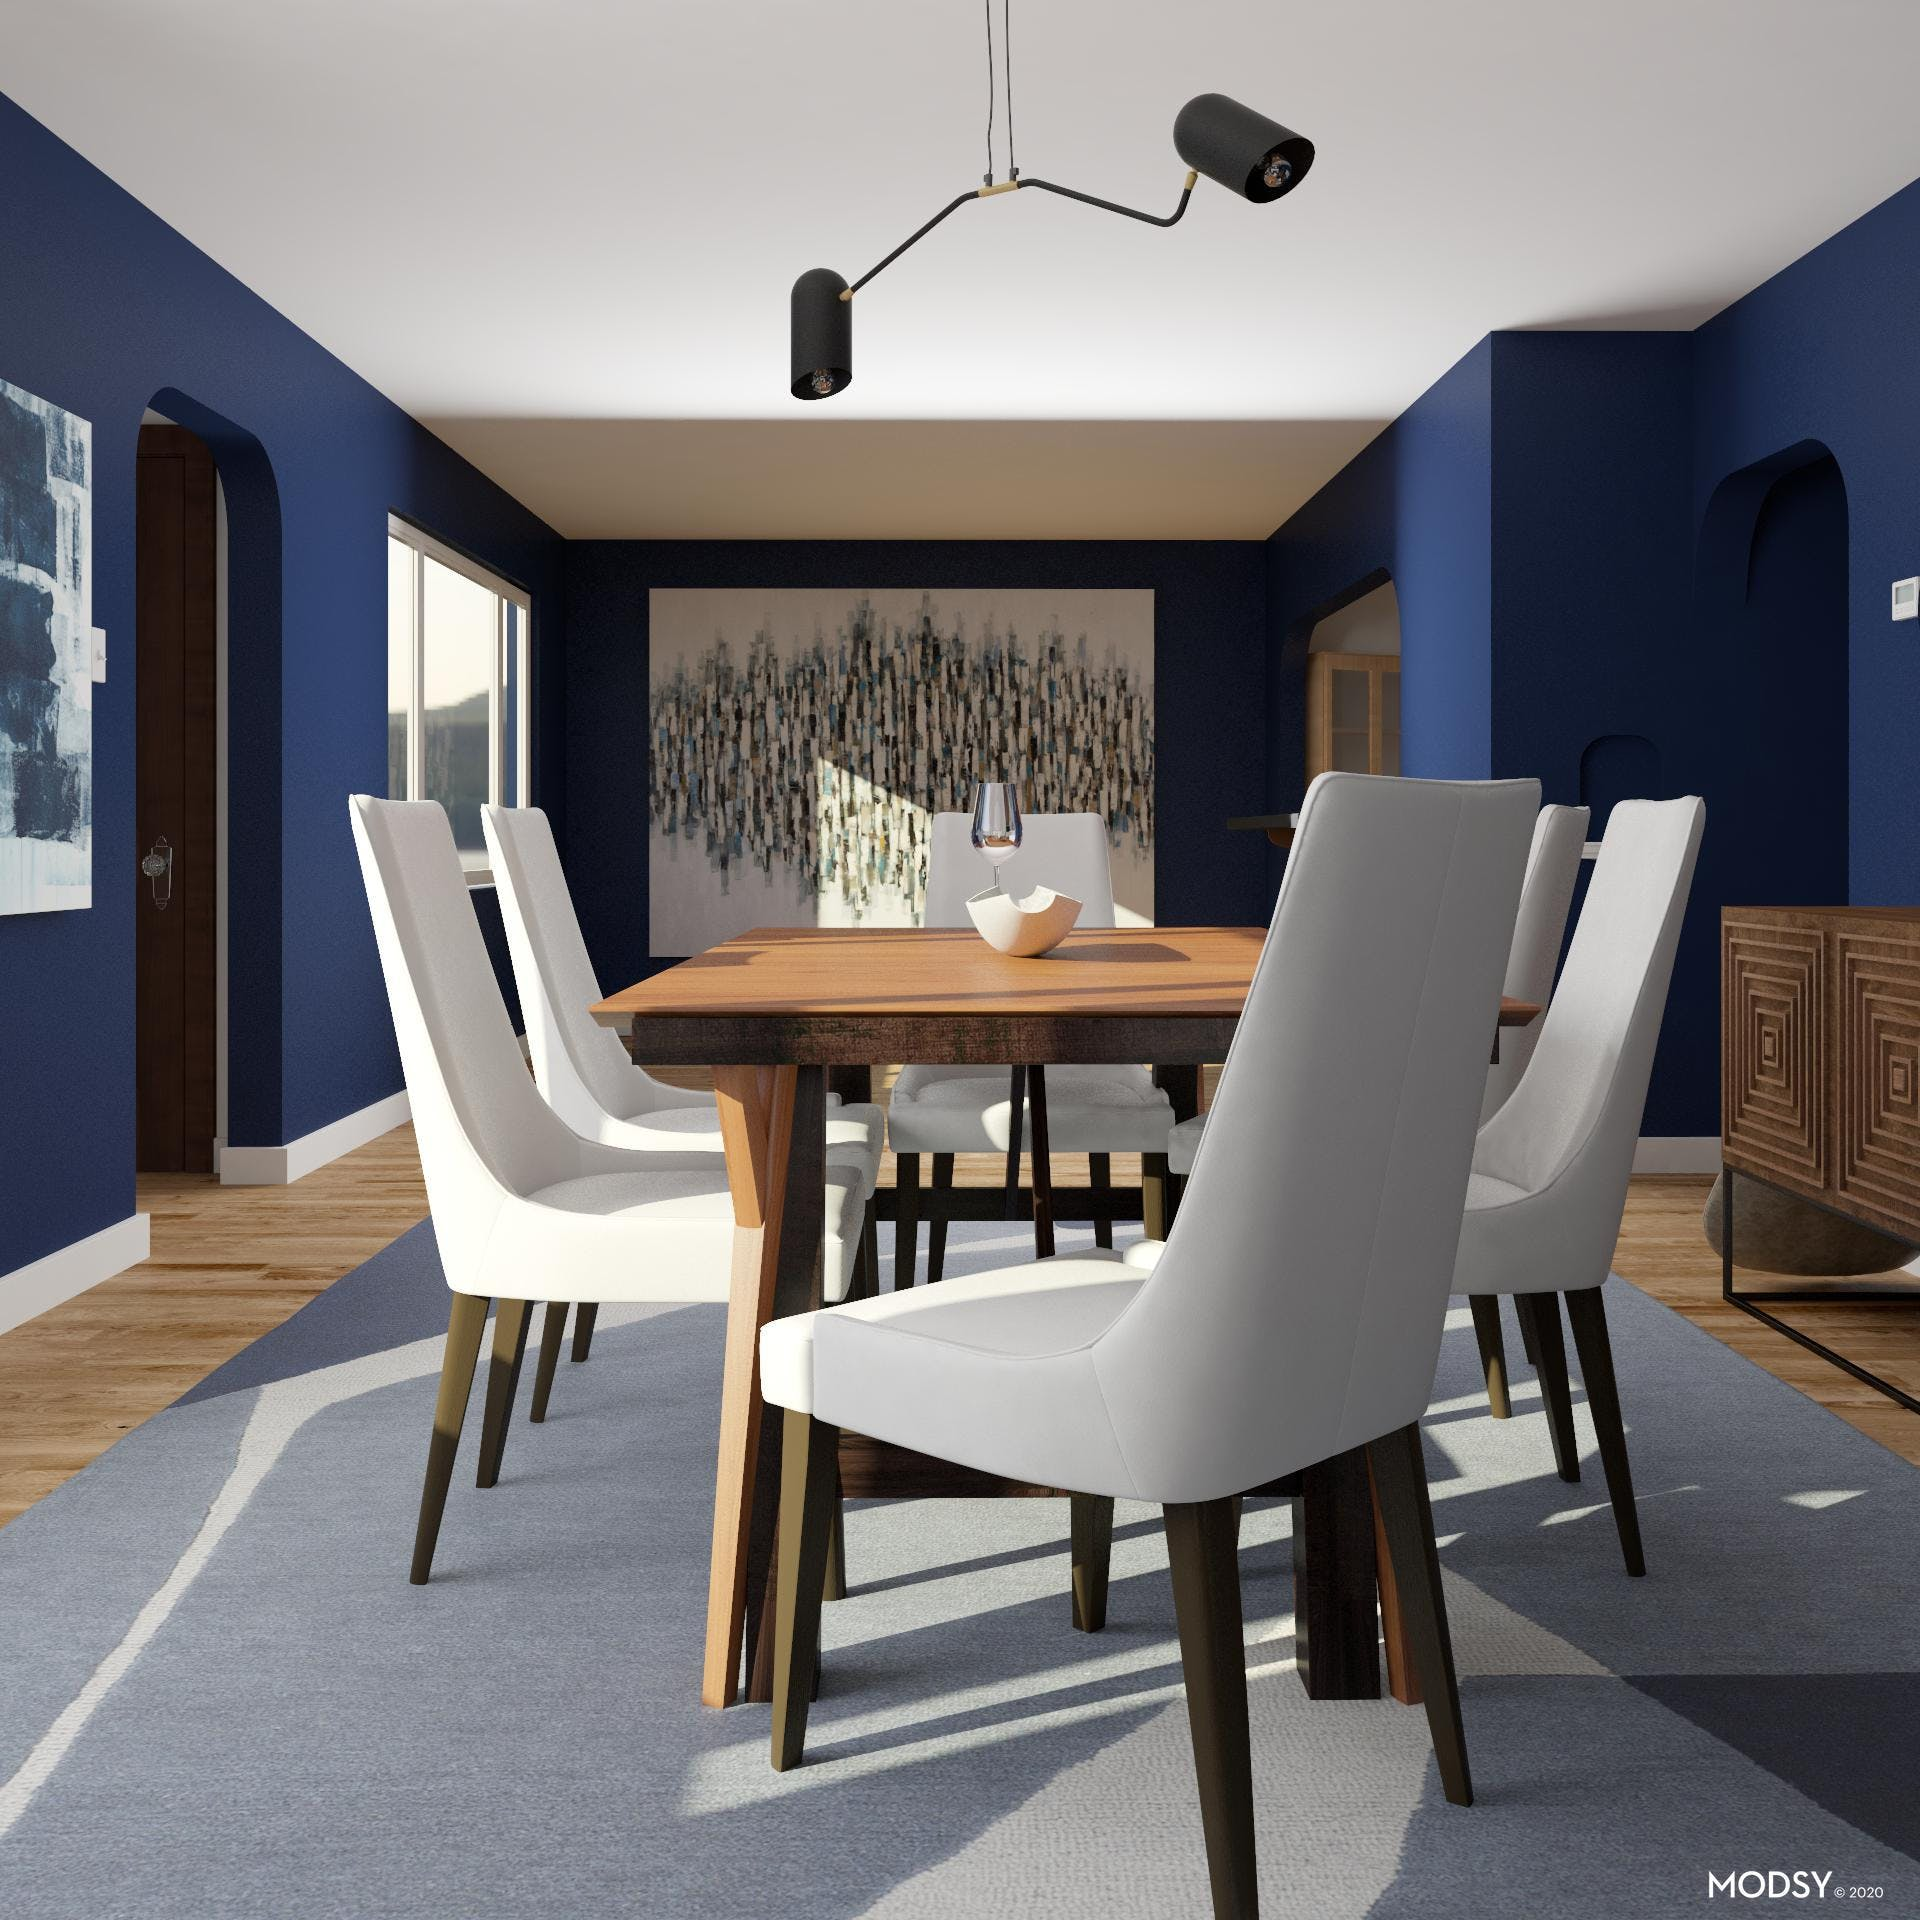 Formal Dining Room in Blues